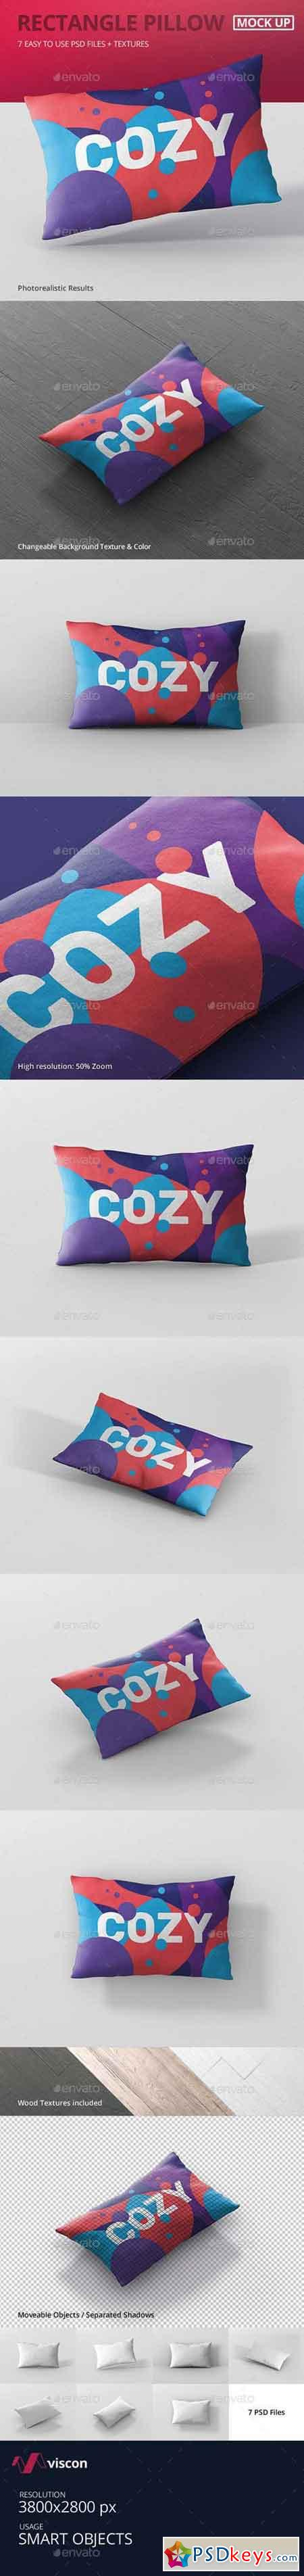 Pillow Mockup - Rectangle 20133703